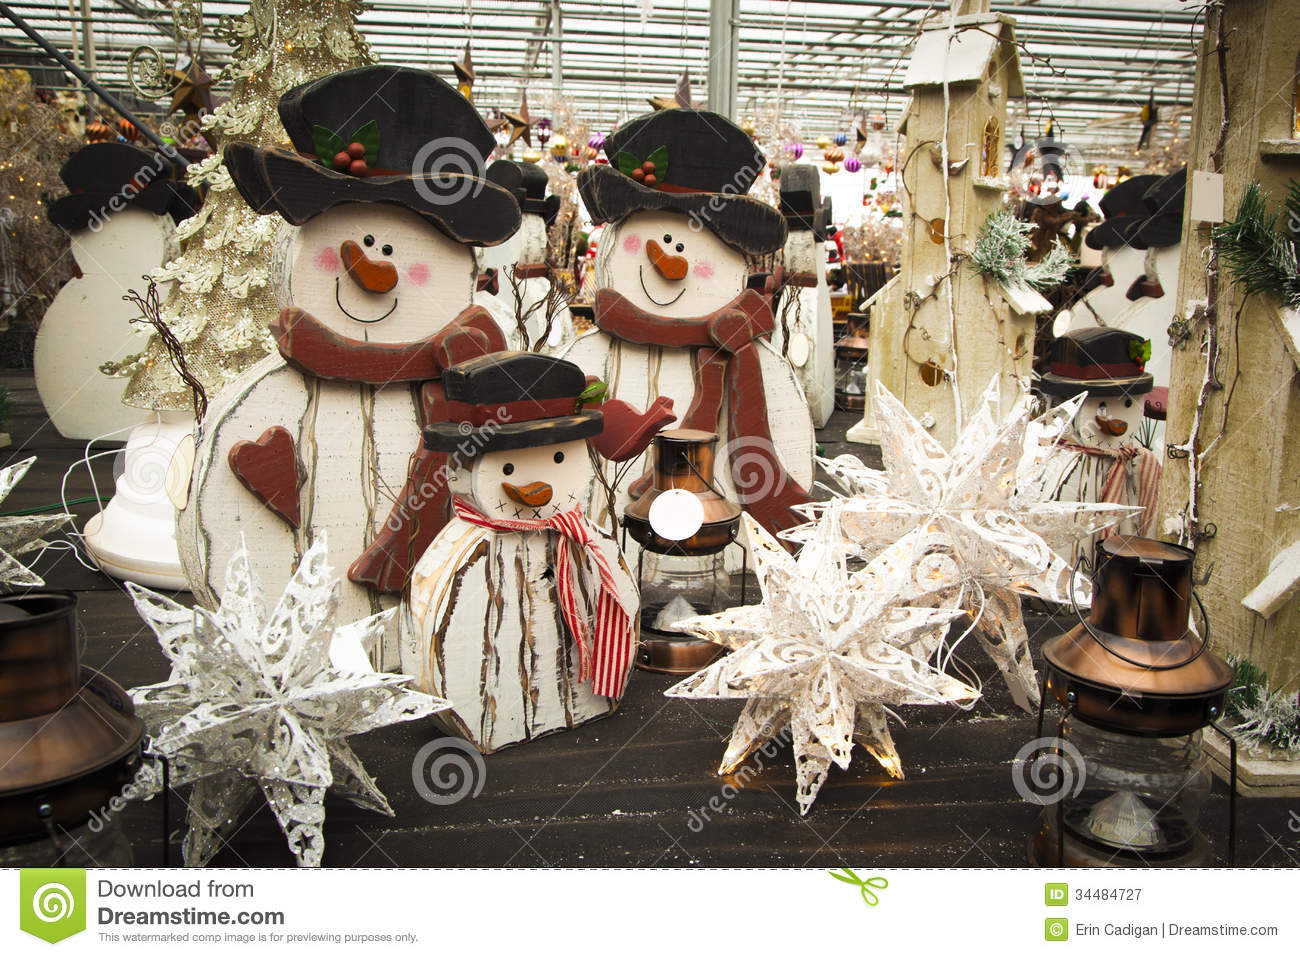 Christmas Decorations For Sale Stock Image - Image of ...